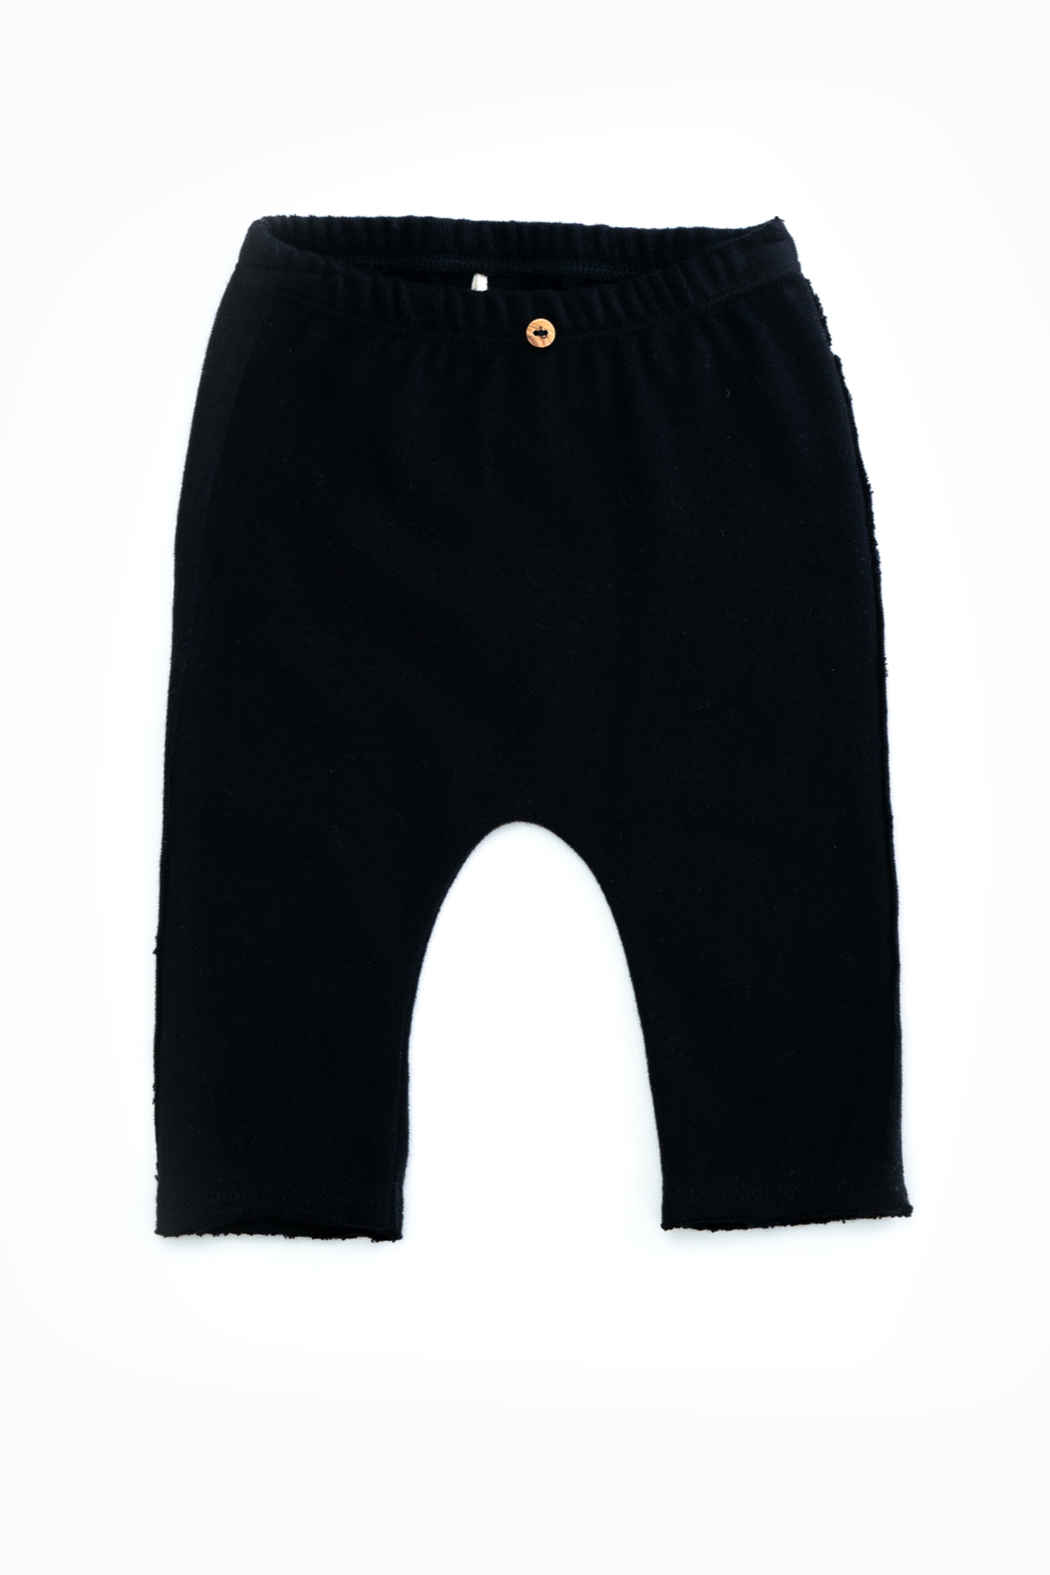 Play Up Organic Cotton Jersey Leggings For Baby Girls - Main Image